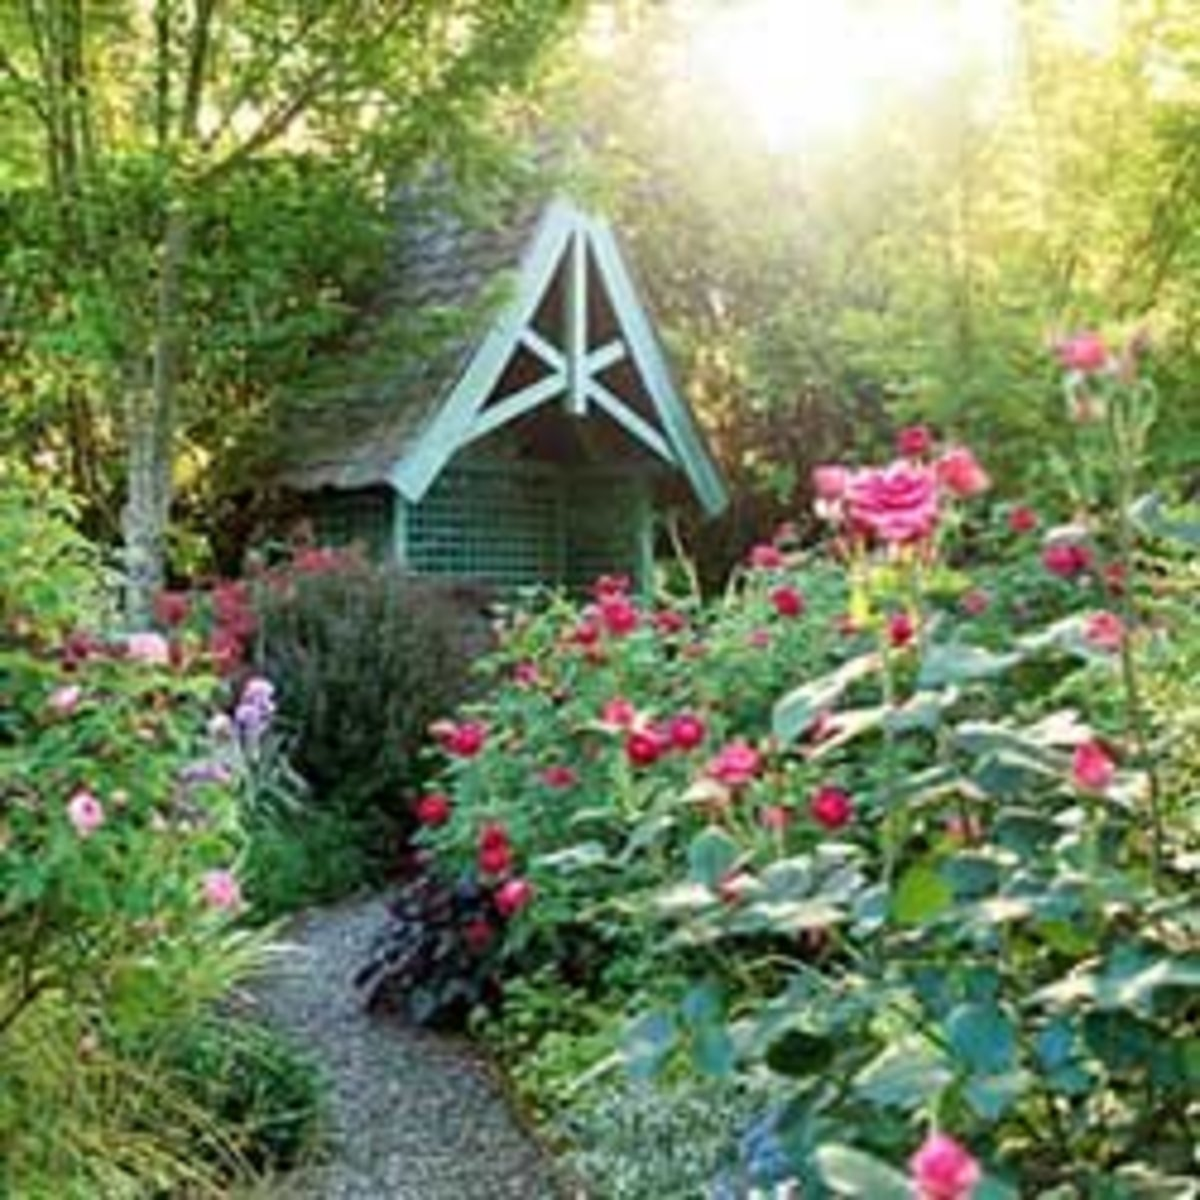 teal aqua potting shed with lush gardens and roses